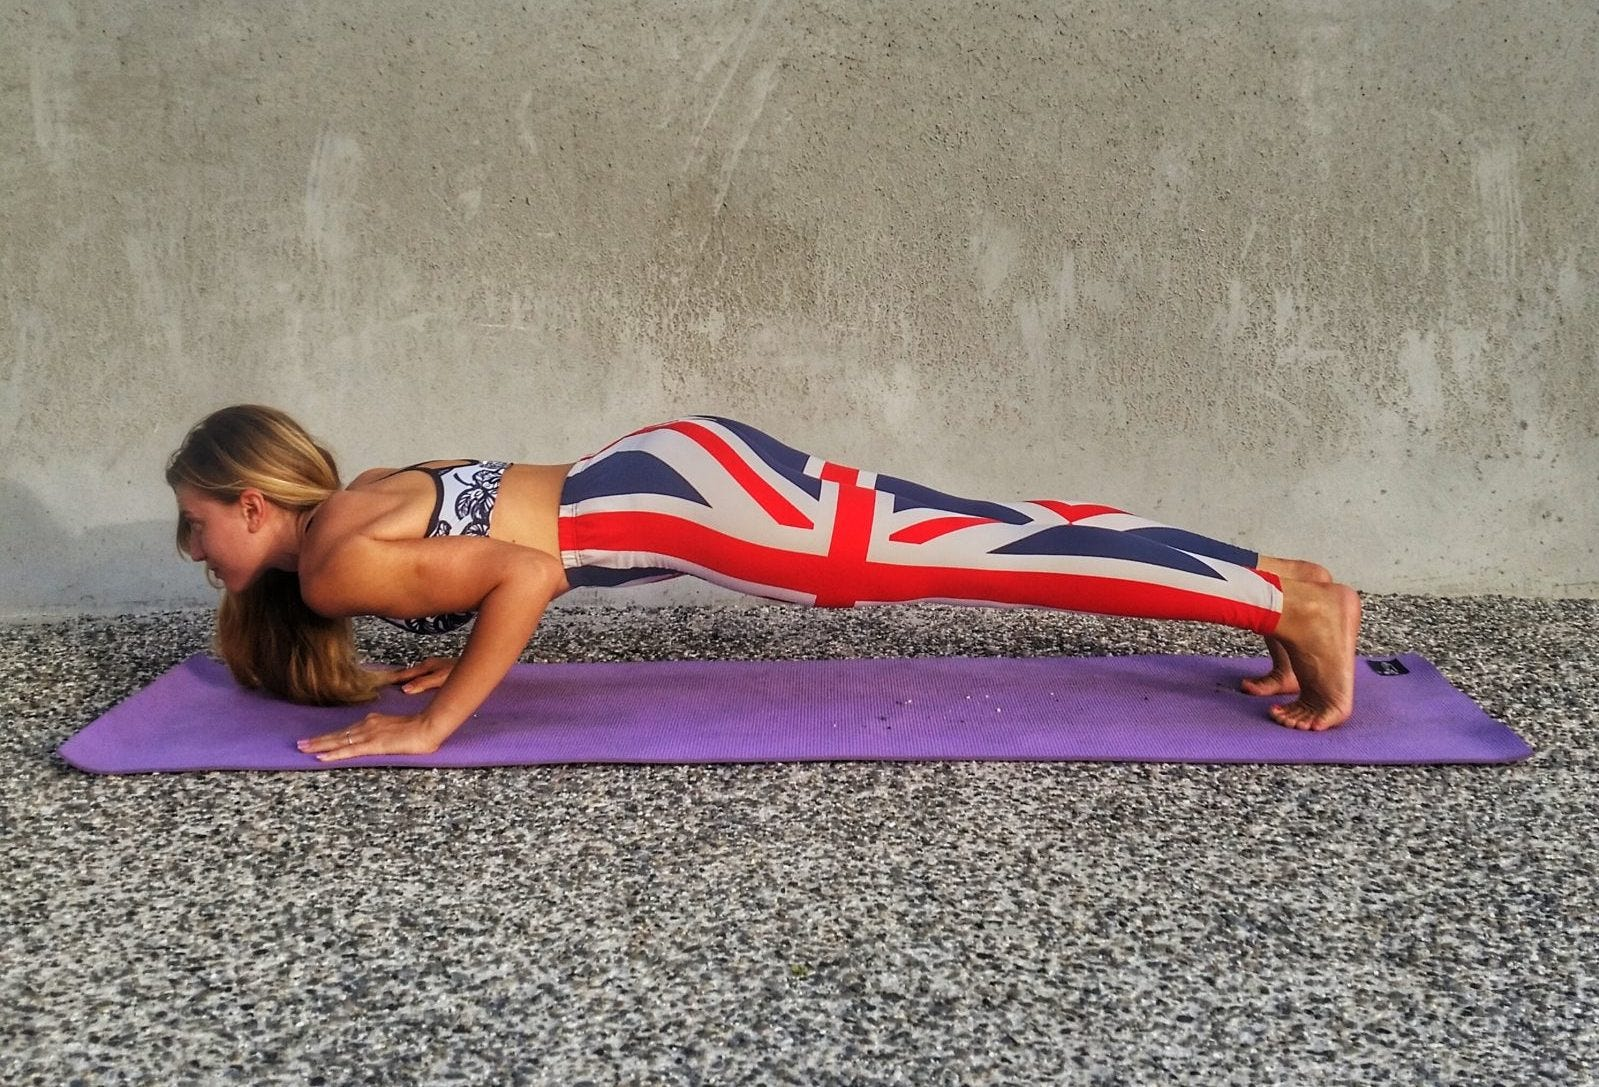 A woman on a yoga mat in a four-limbed plank pose.